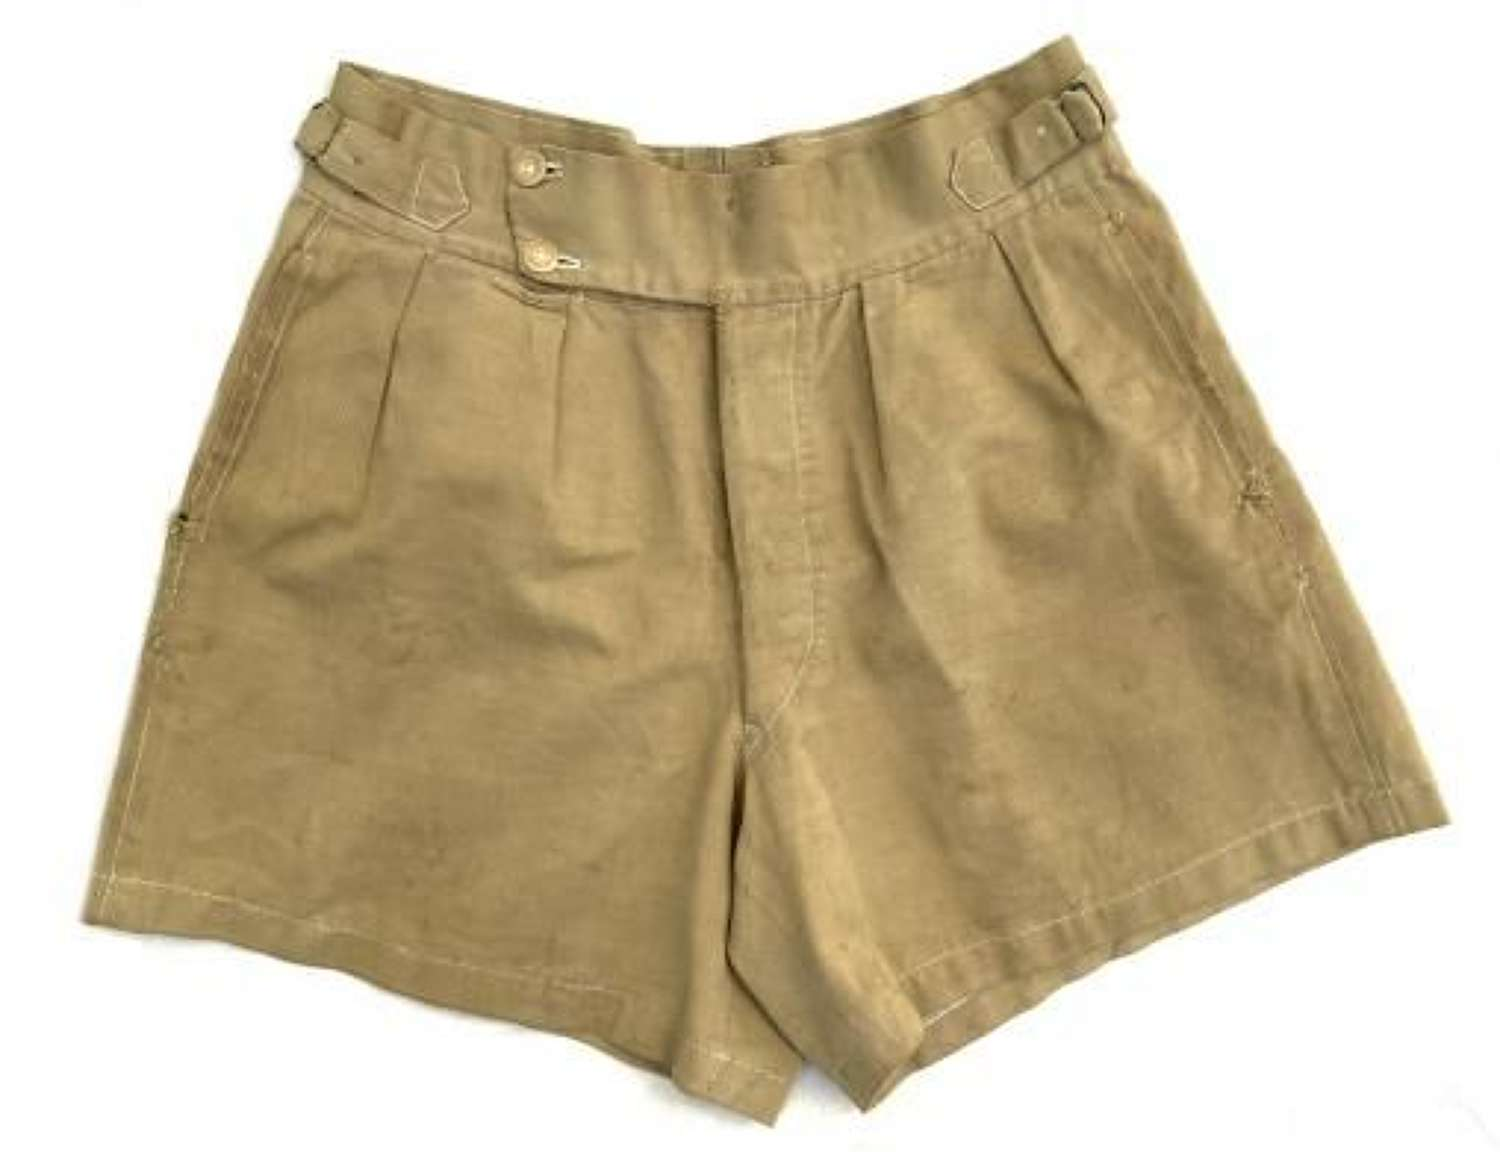 Original WW2 Khaki Drill Shorts